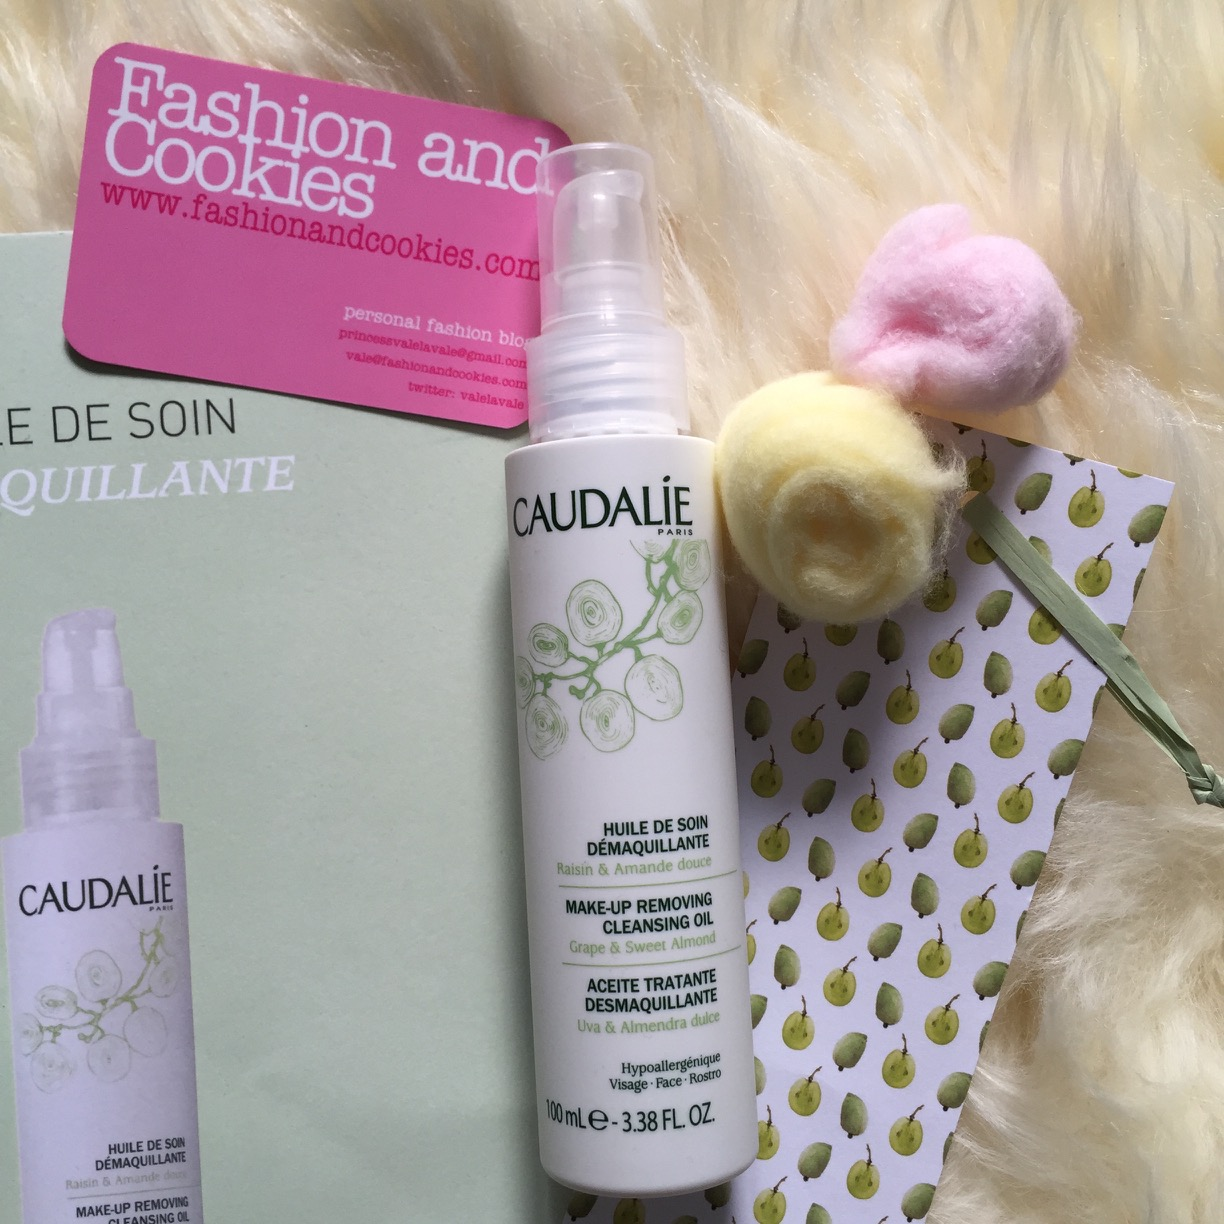 Caudalie Huile de Soin Démaquillante review on Fashion and Cookies beauty blog